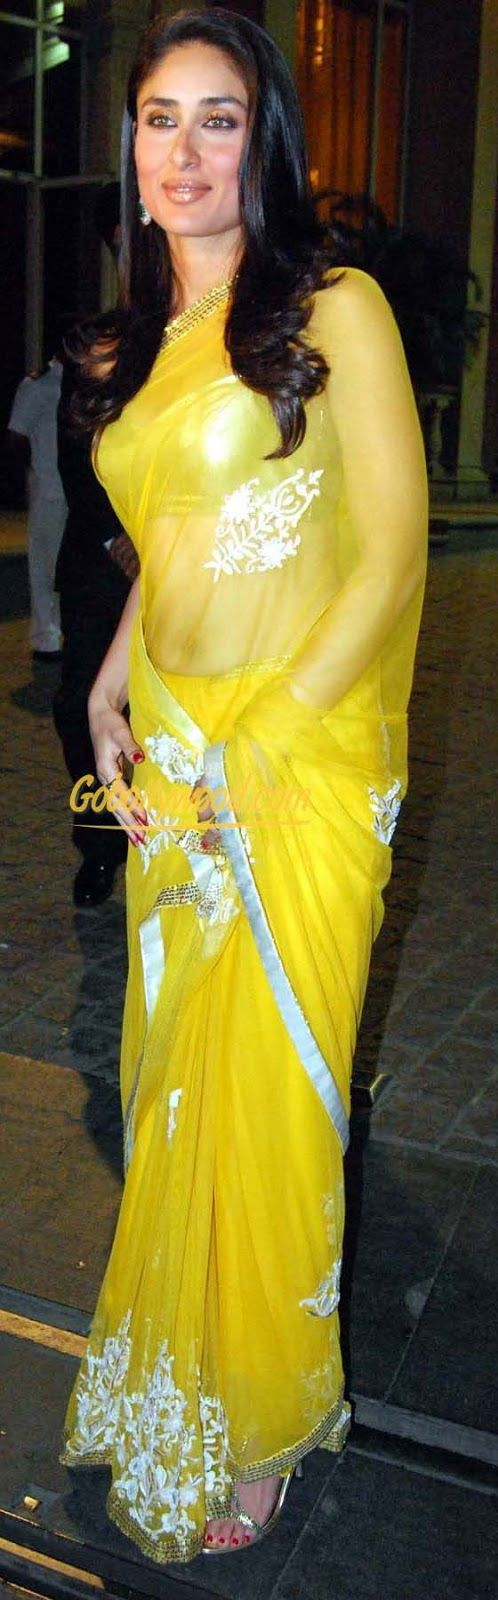 kareena kapoor in sarees - Google Search